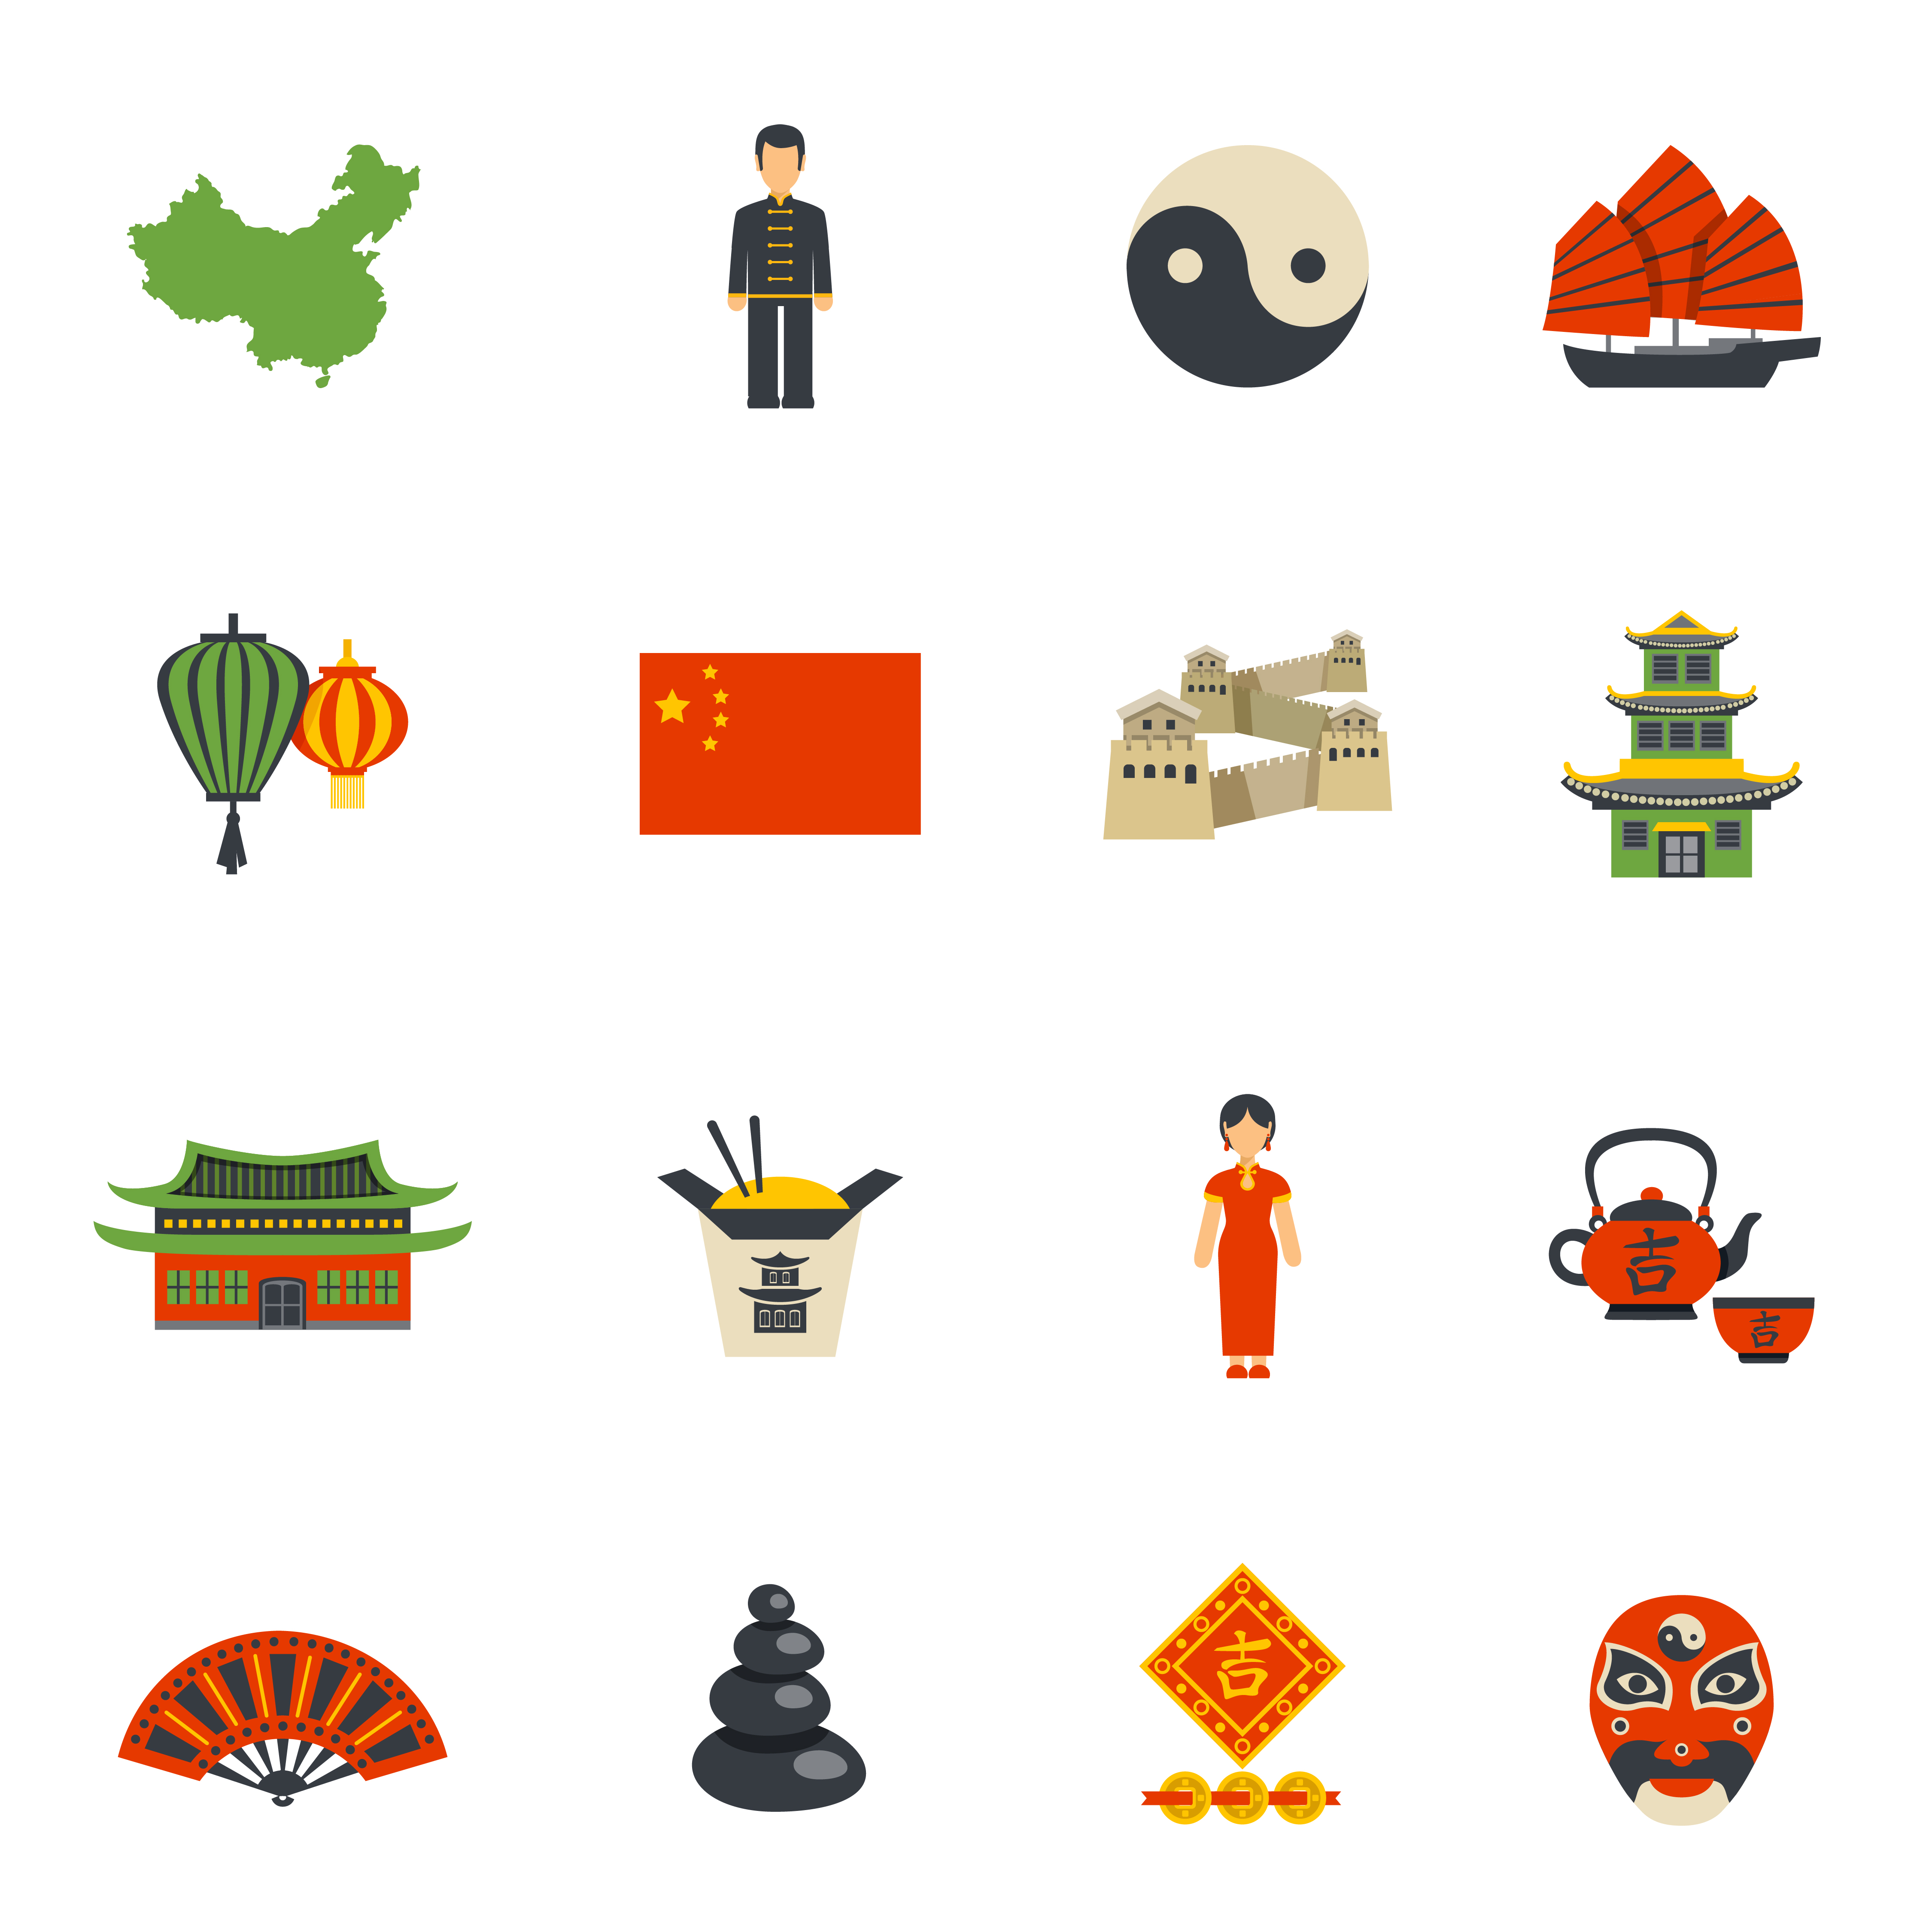 Chinese Culture Symbols Flat Icons Set Vector - Download